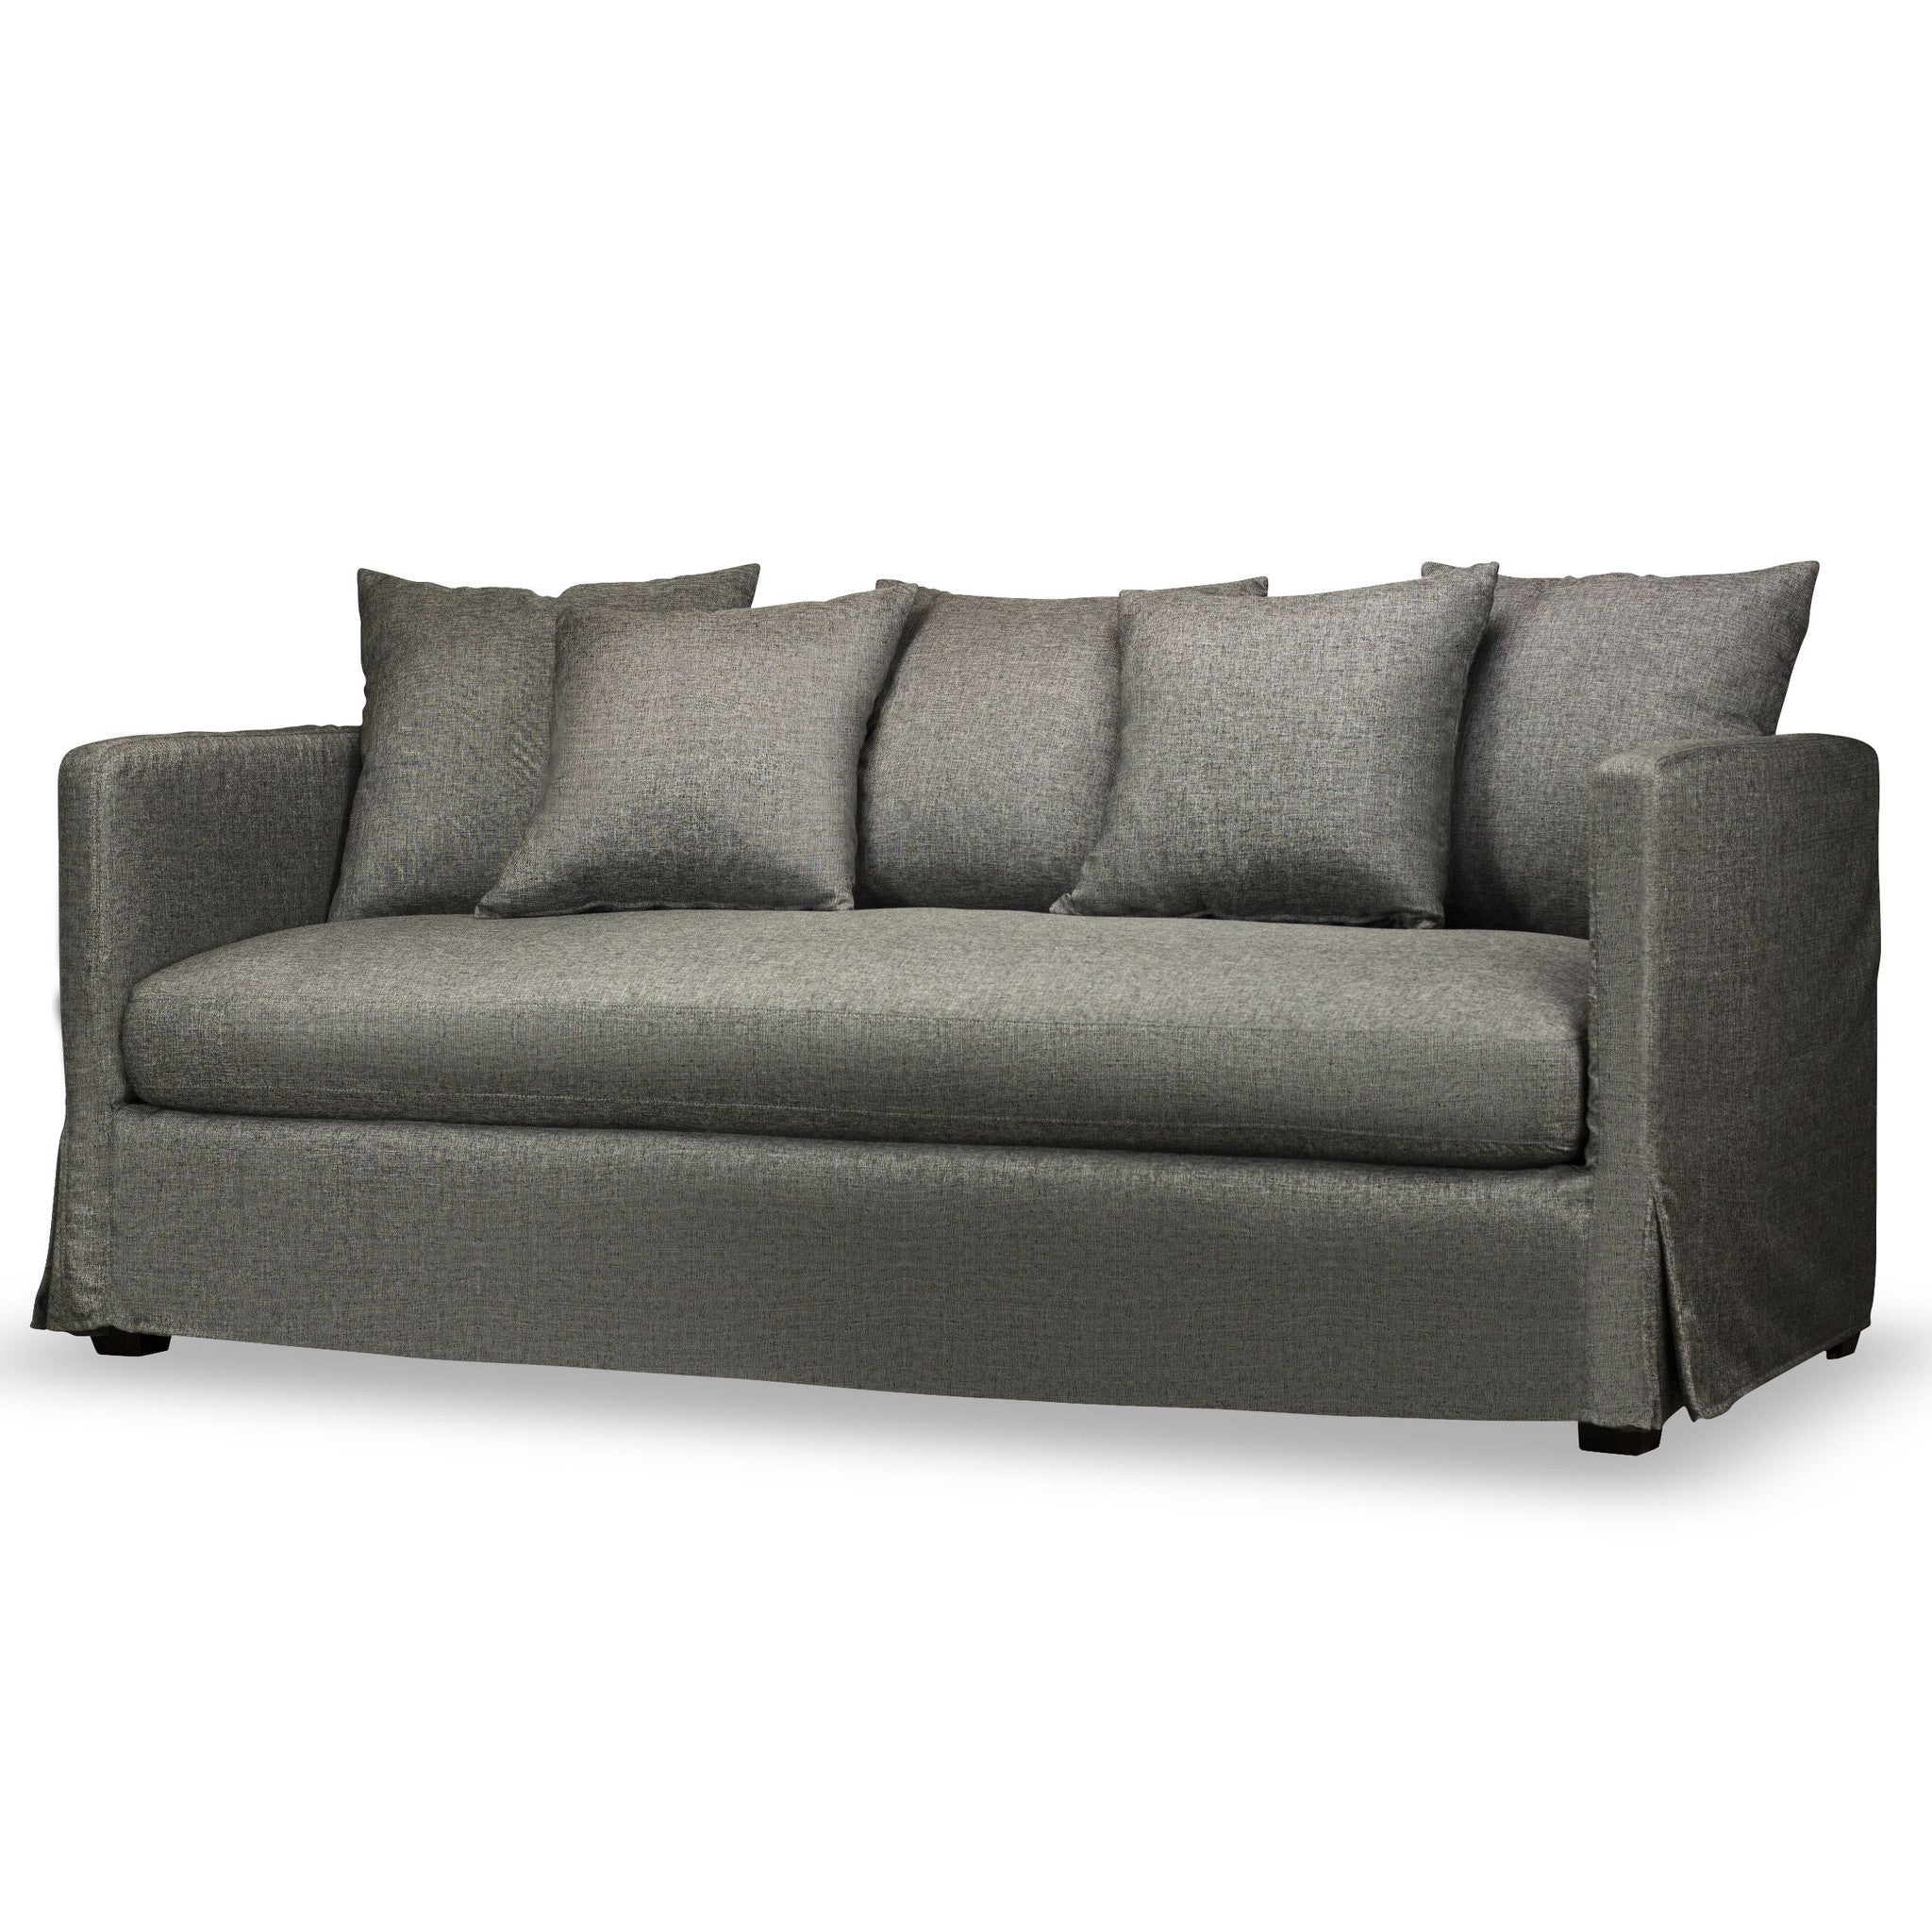 Jamie Slip Covered Sleeper Sofa Spectra Home